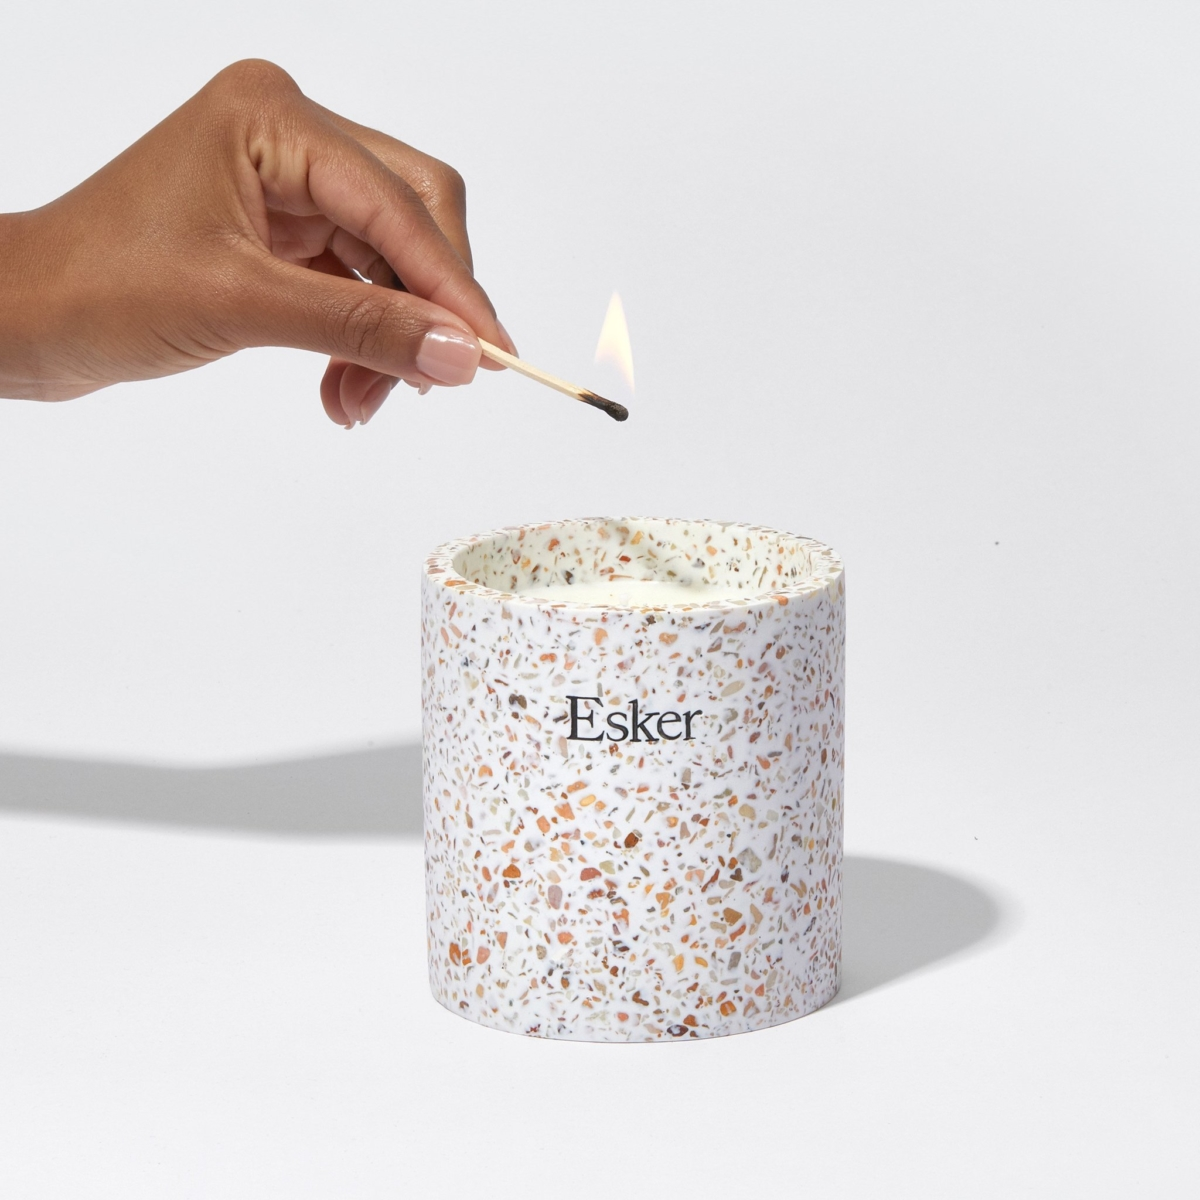 Lighting the plantable candle